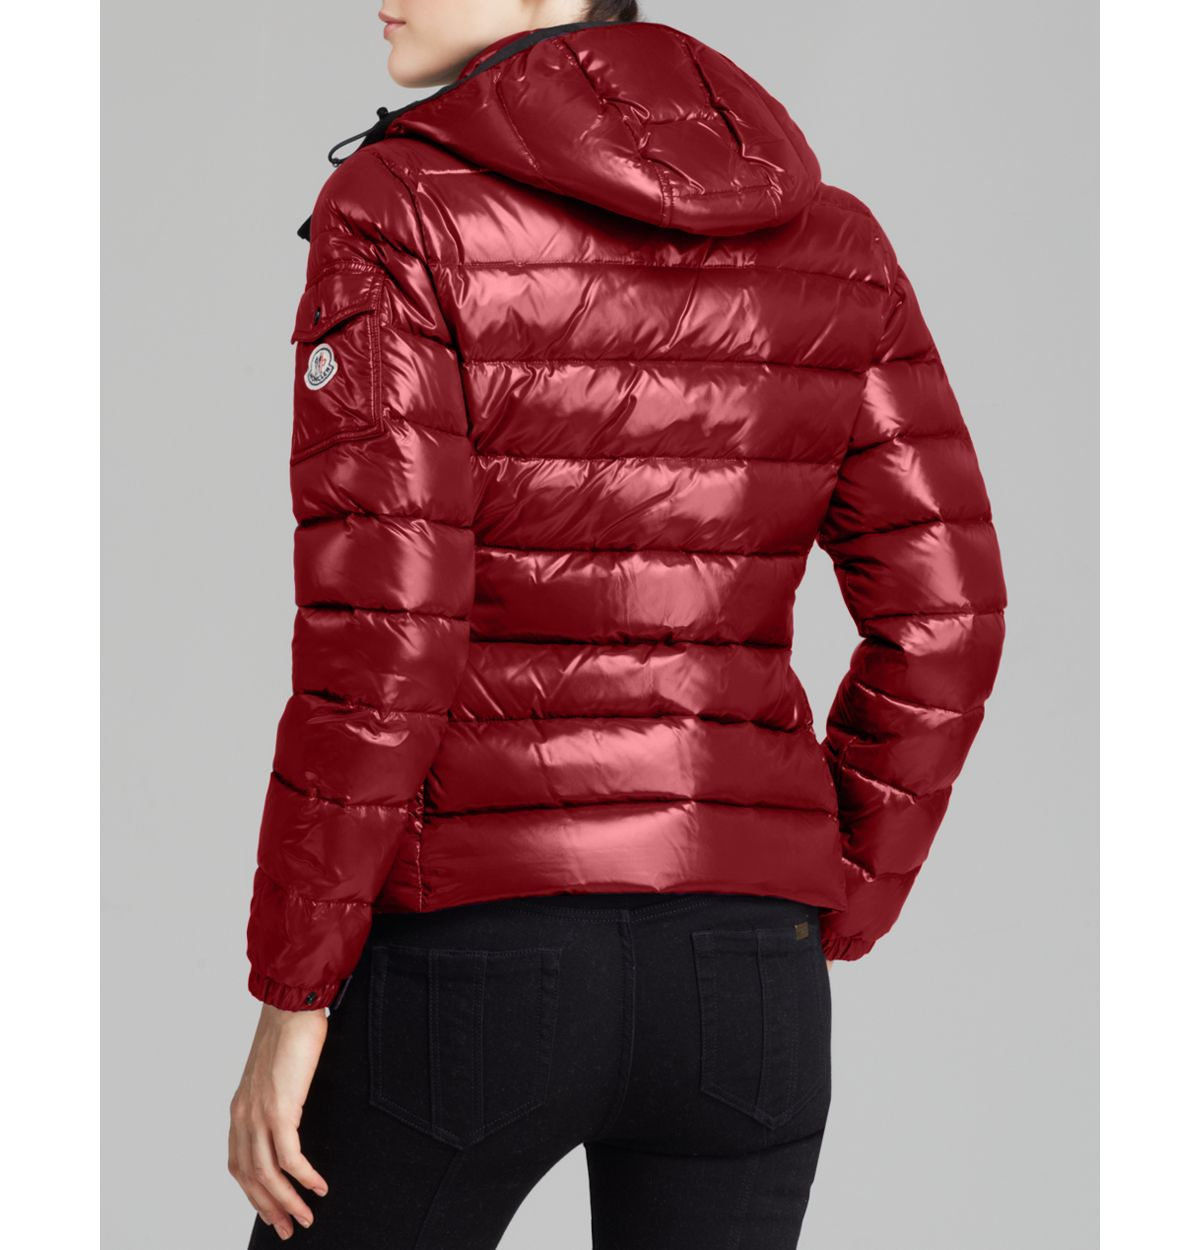 db7e45be4 coupon moncler coat ruffle red 00582 ed0d1